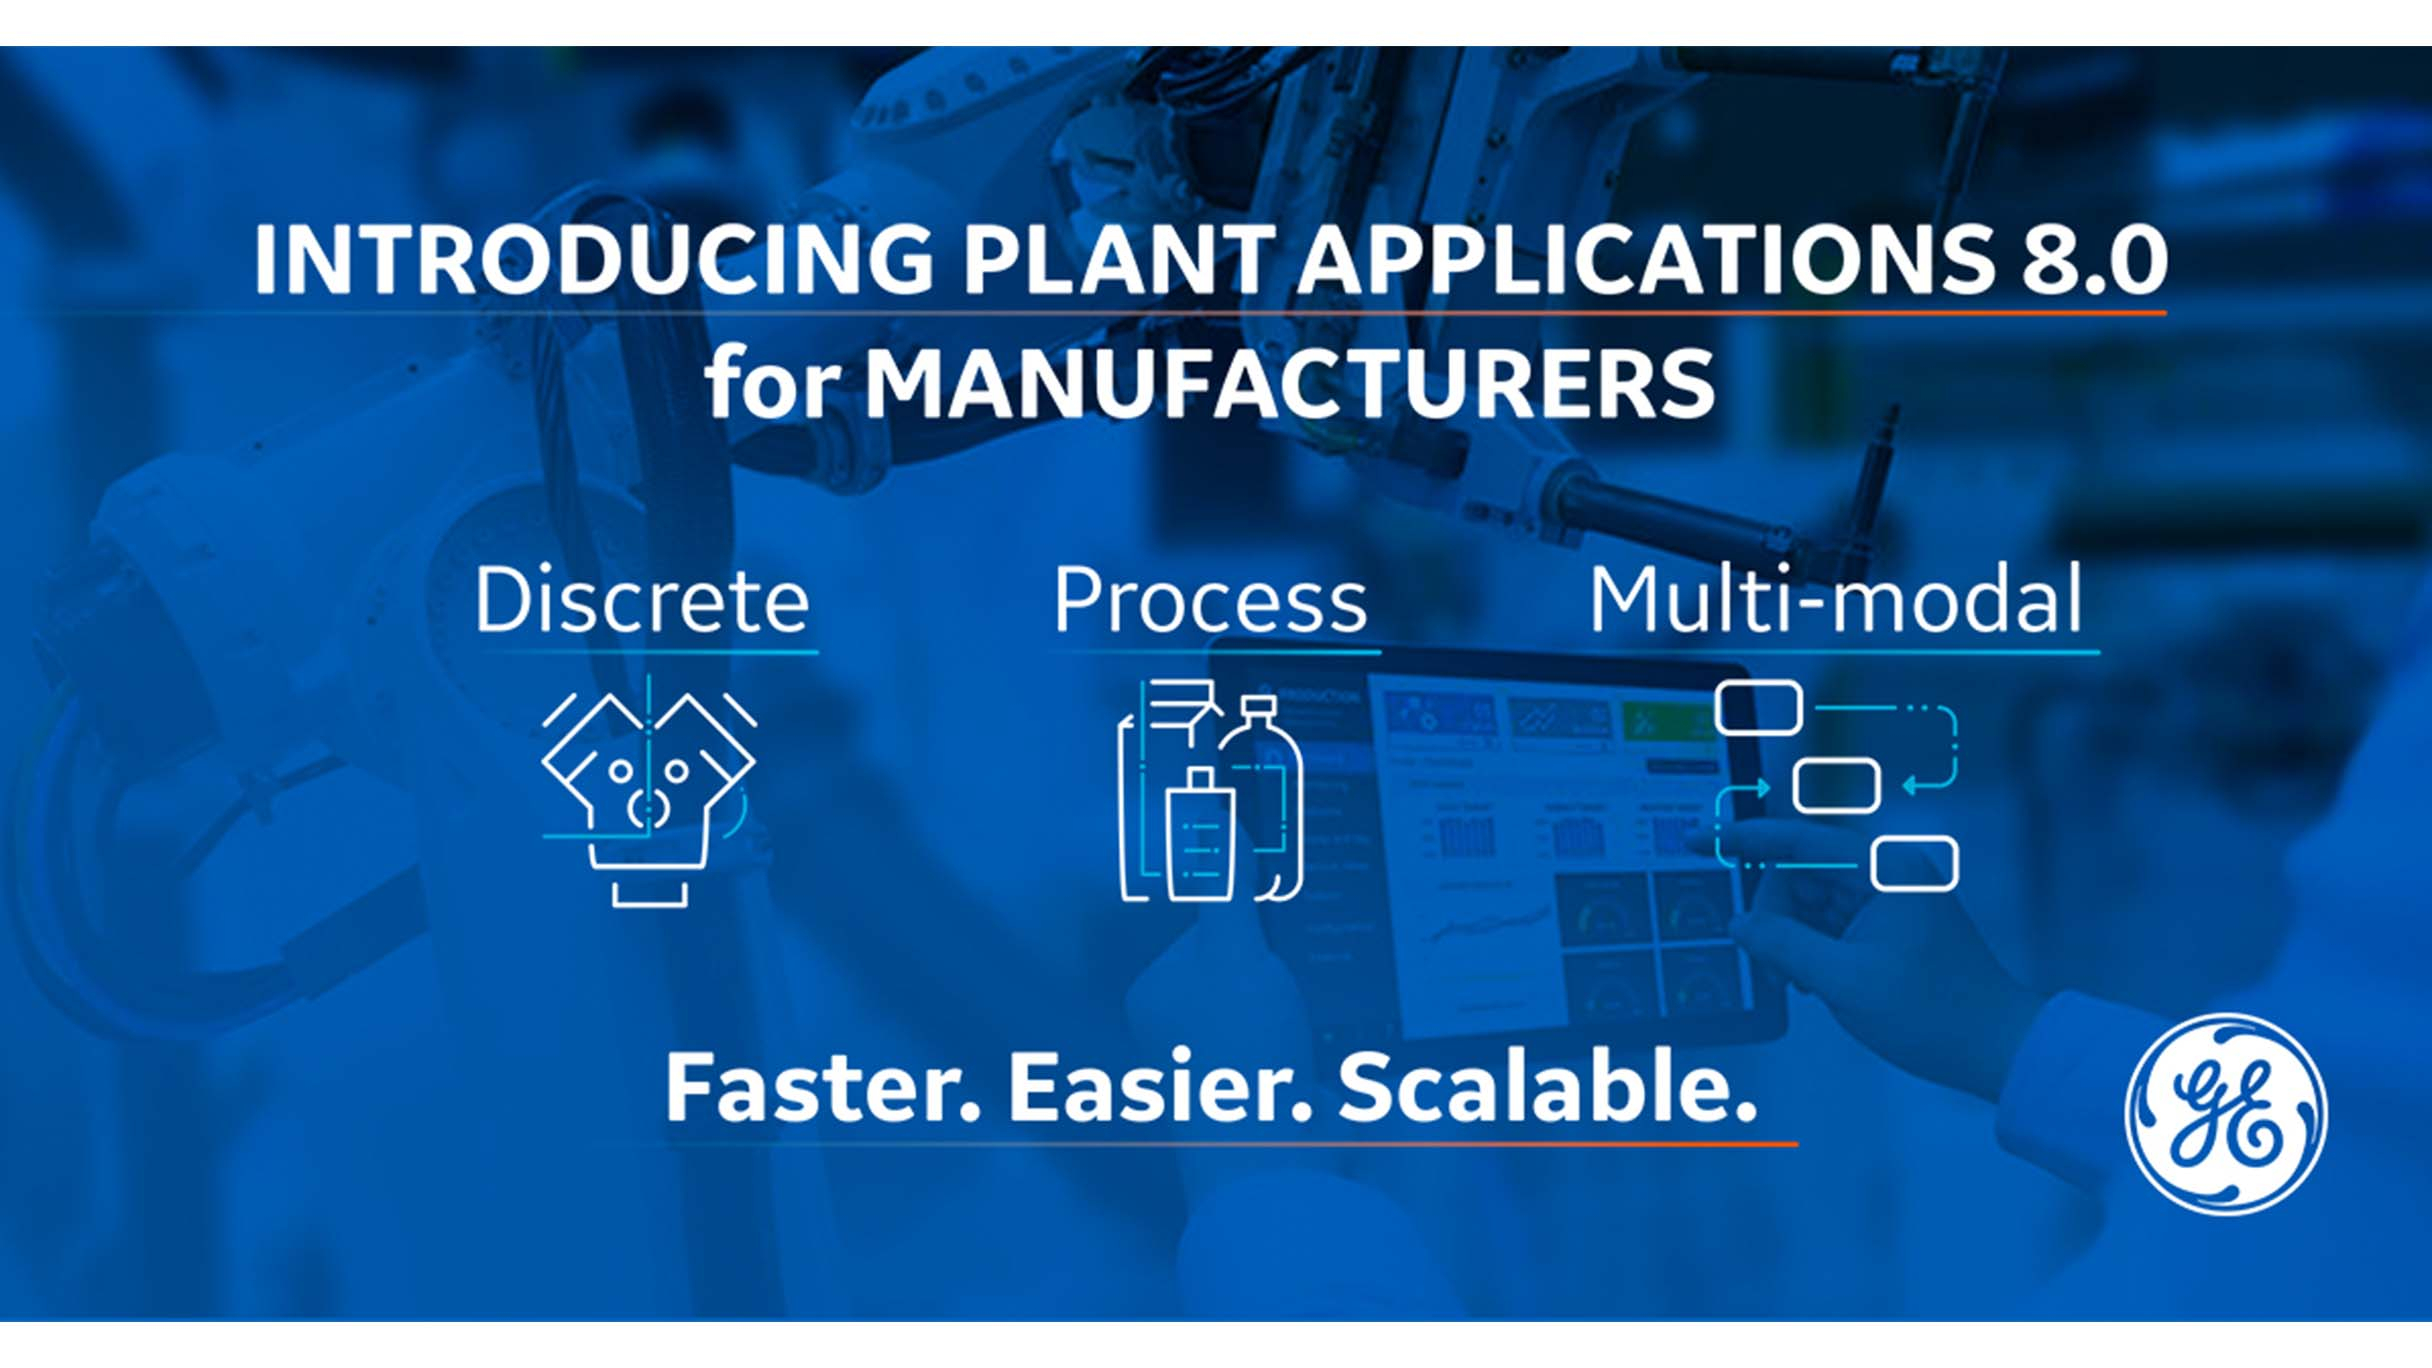 GE Digital announces Plant Applications 8.0 Manufacturing Execution System